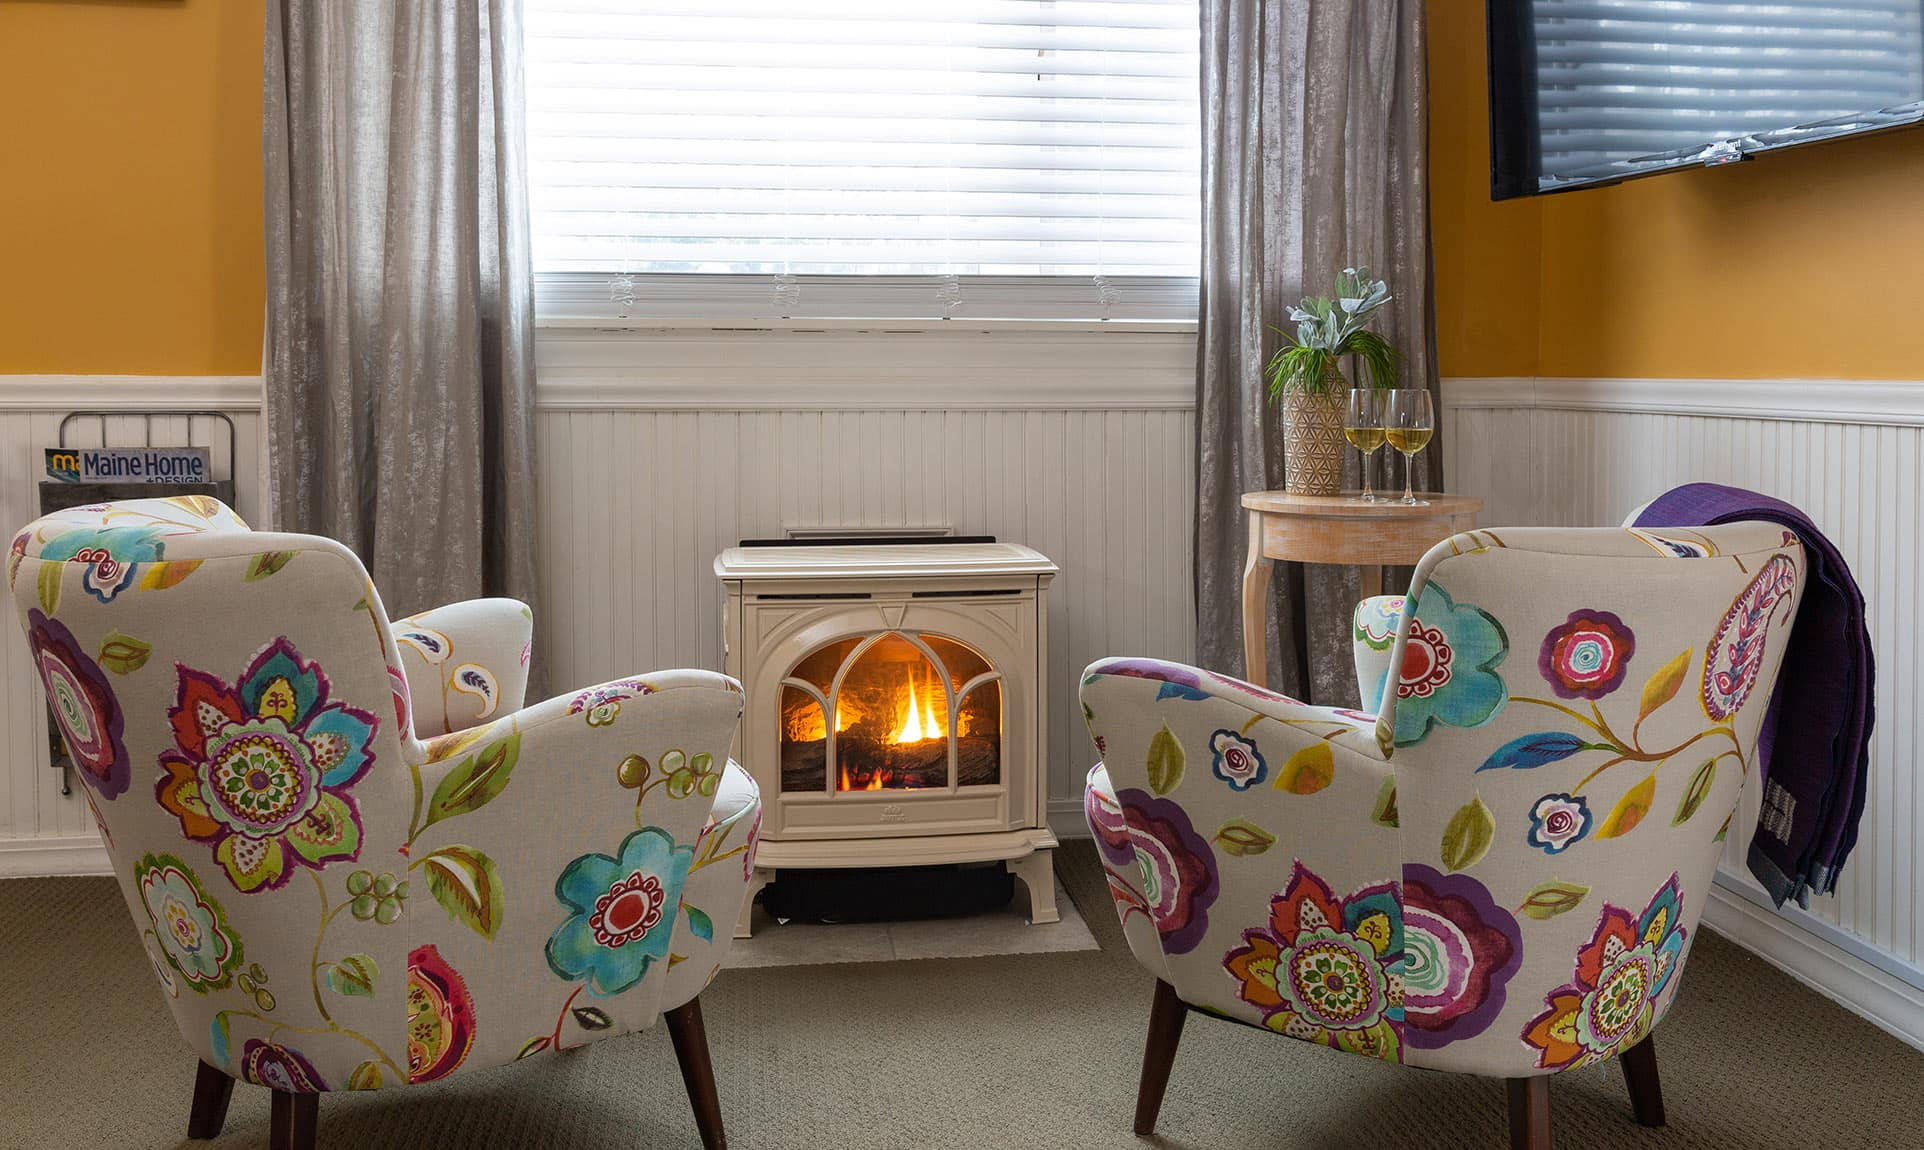 Two colorful chairs in front of fireplace